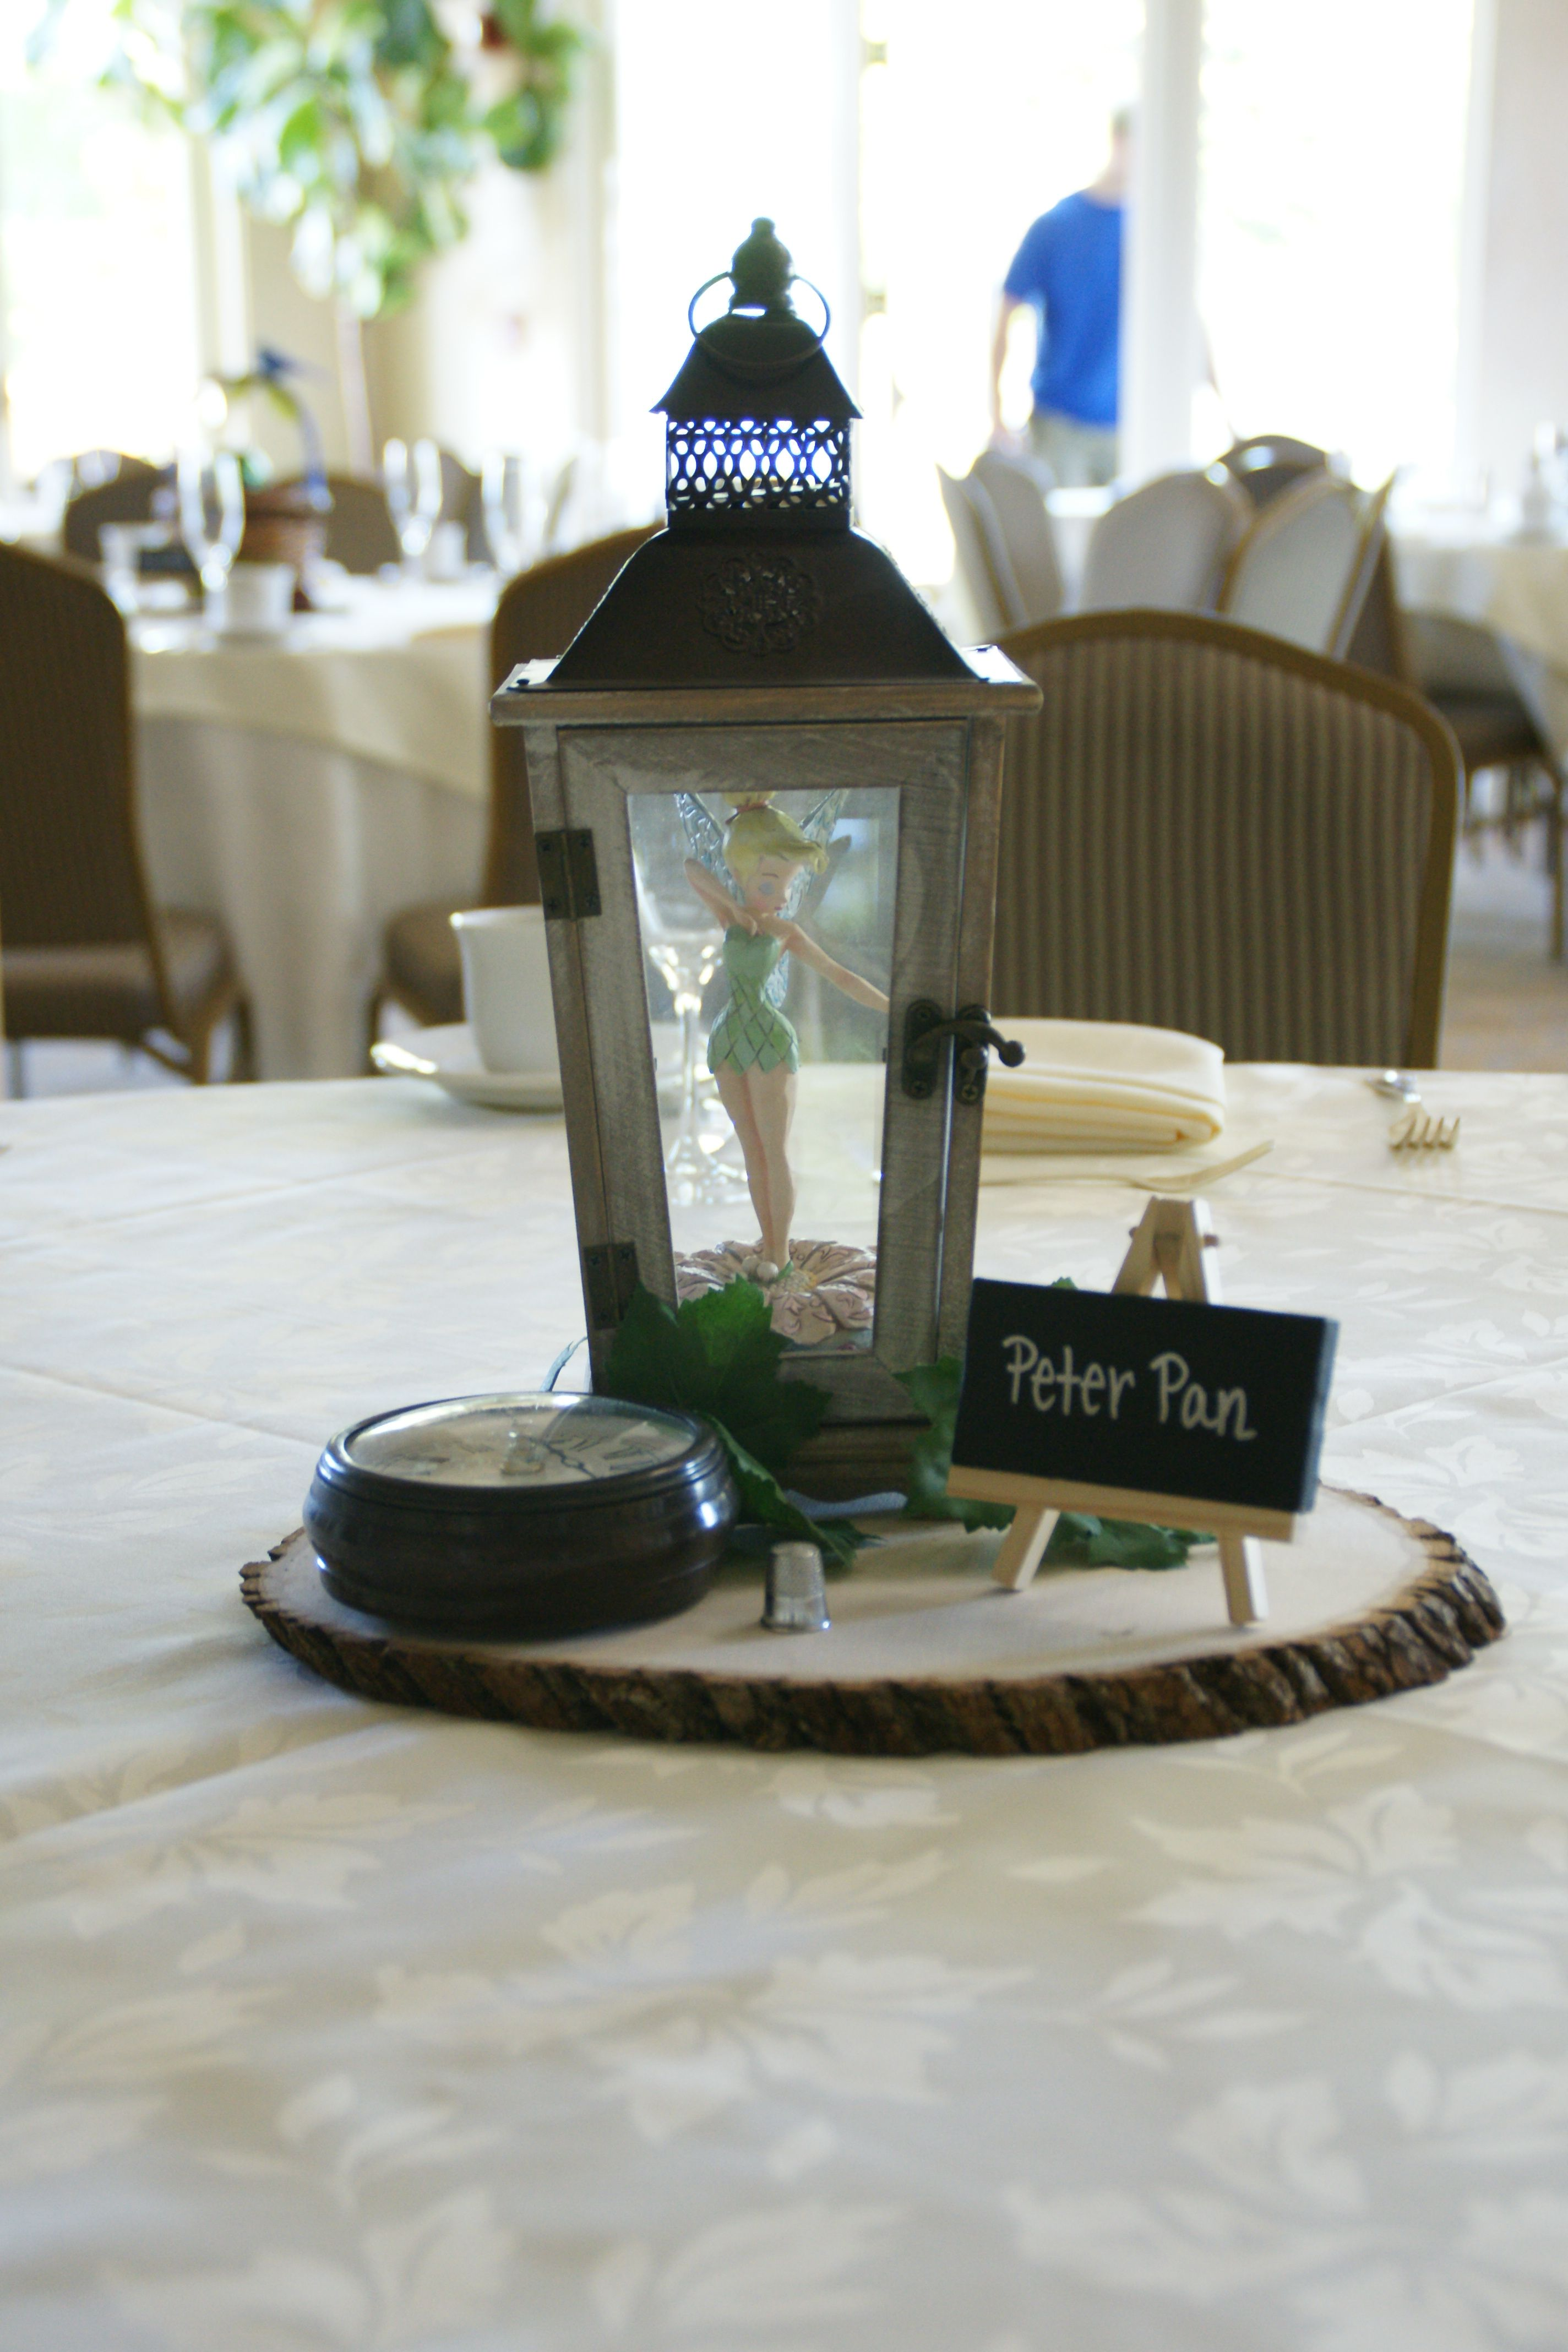 PETER PAN CENTERPIECE: Bought the lantern, and wooden base at an Arts & Crafts store. Bought the time watch and thimble at a thrift store. Put a Tinkerbell into the lantern and there you go! A trapped Tinkerbell!